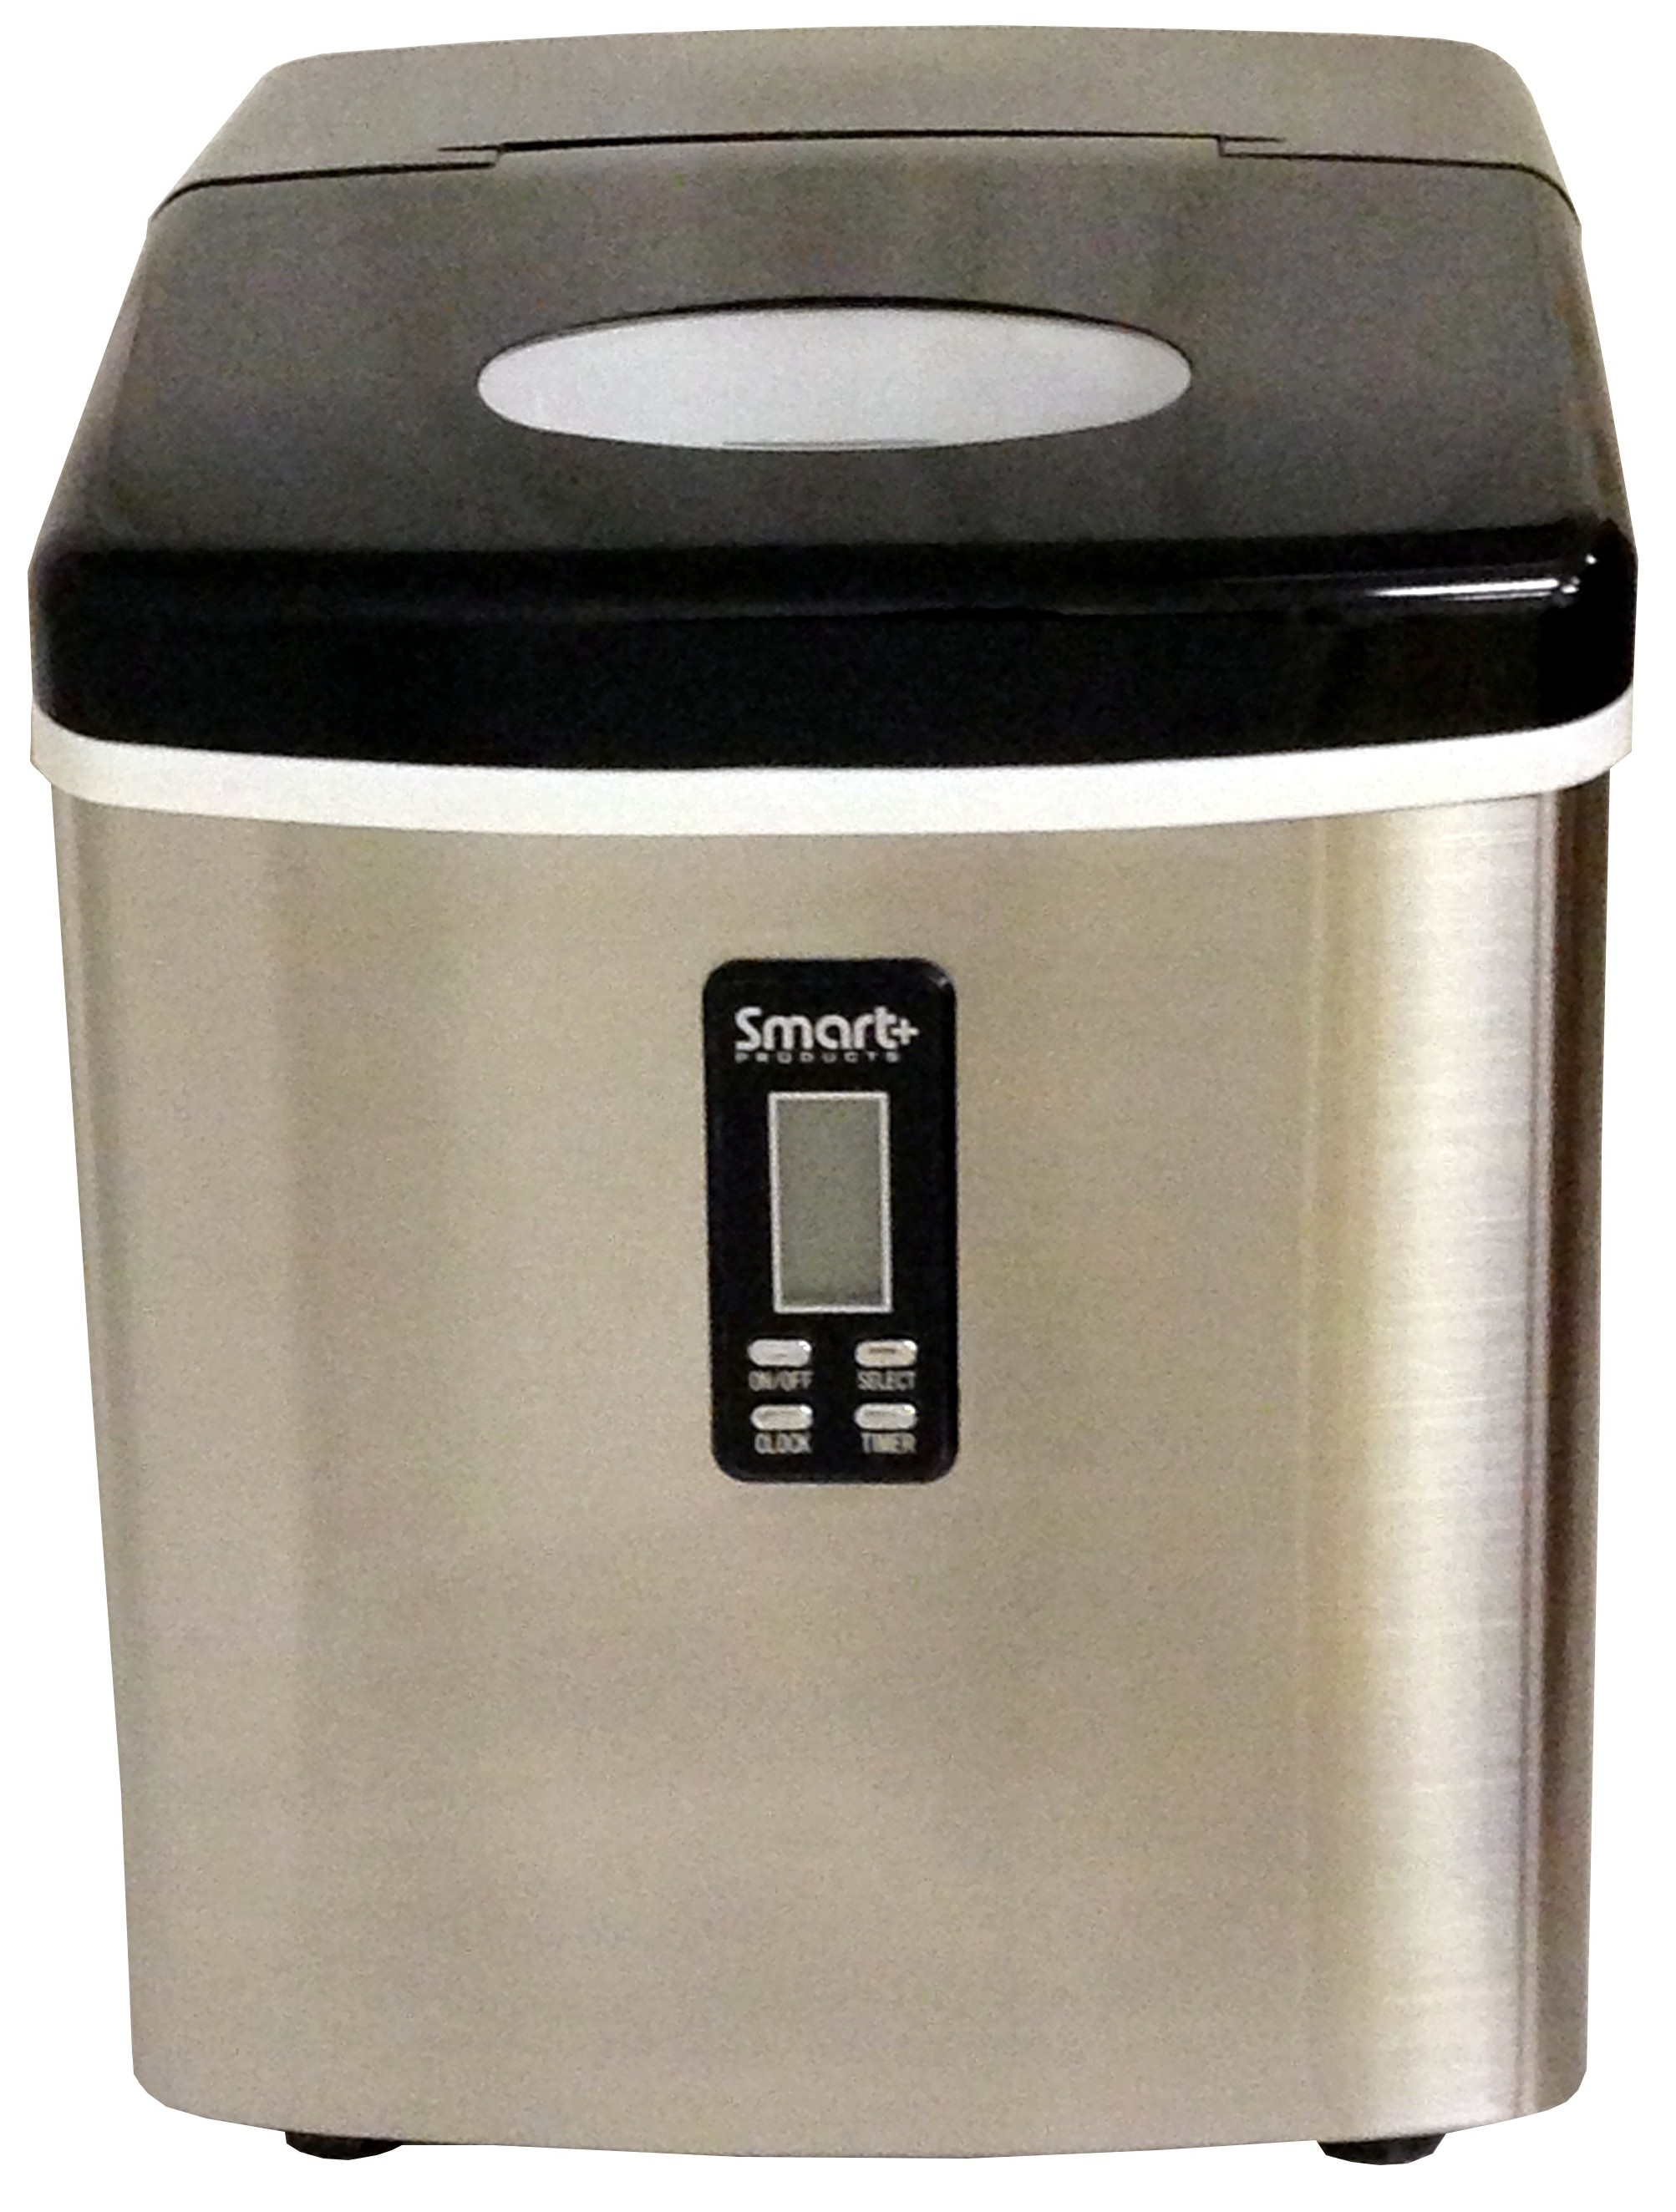 Countertop Ice Maker How Does It Work : ... Smart+ Portable Countertop Ice Maker Machine Stainless SPP15AIM Refurb